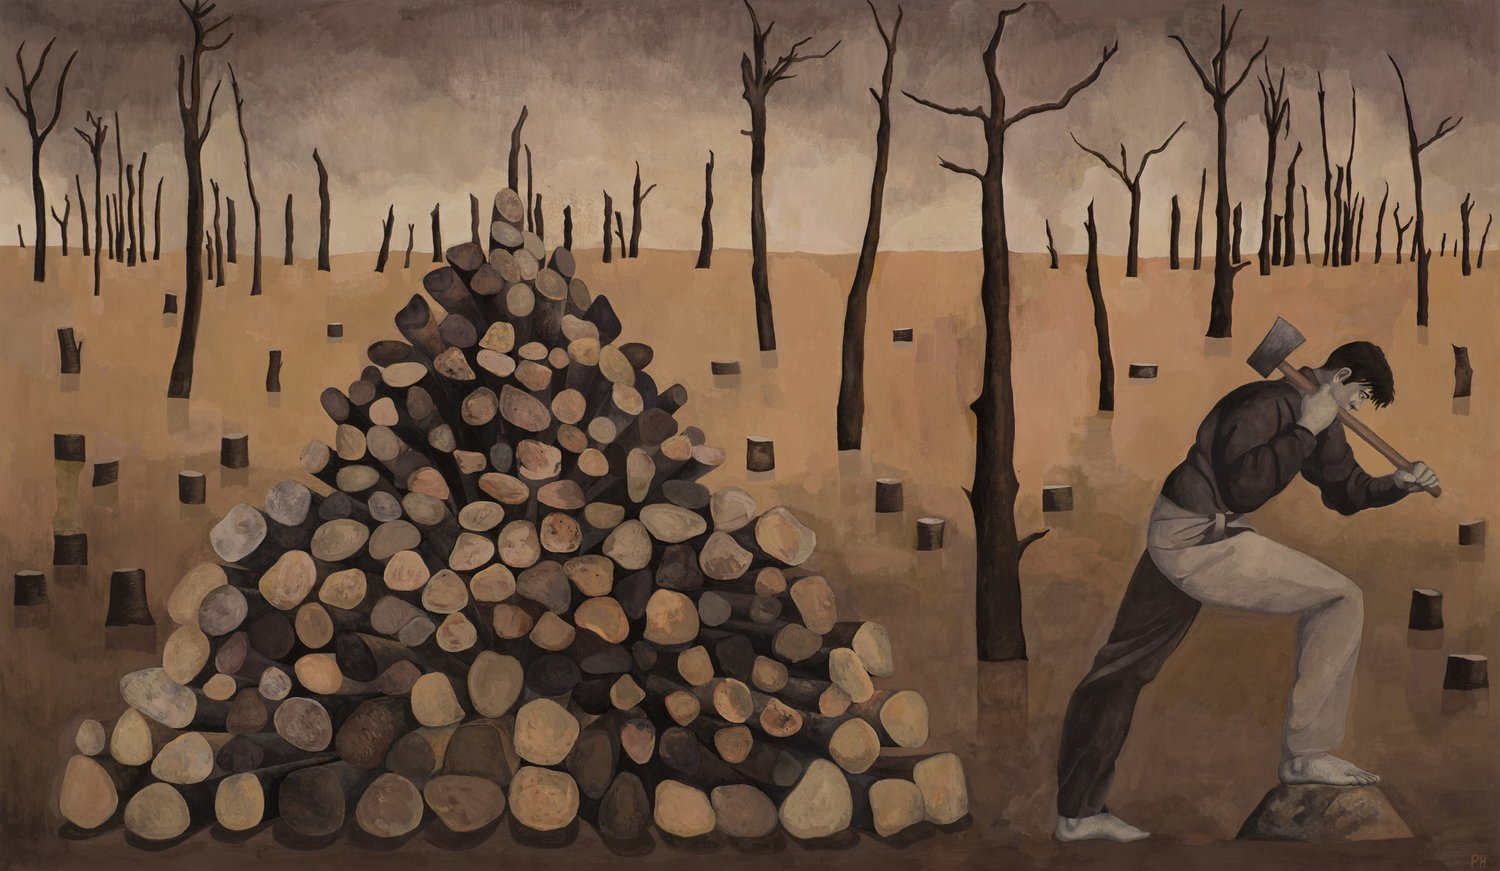 'Woodcutter', Paul Hogg, Gouache on paper, 46 x 80 cm